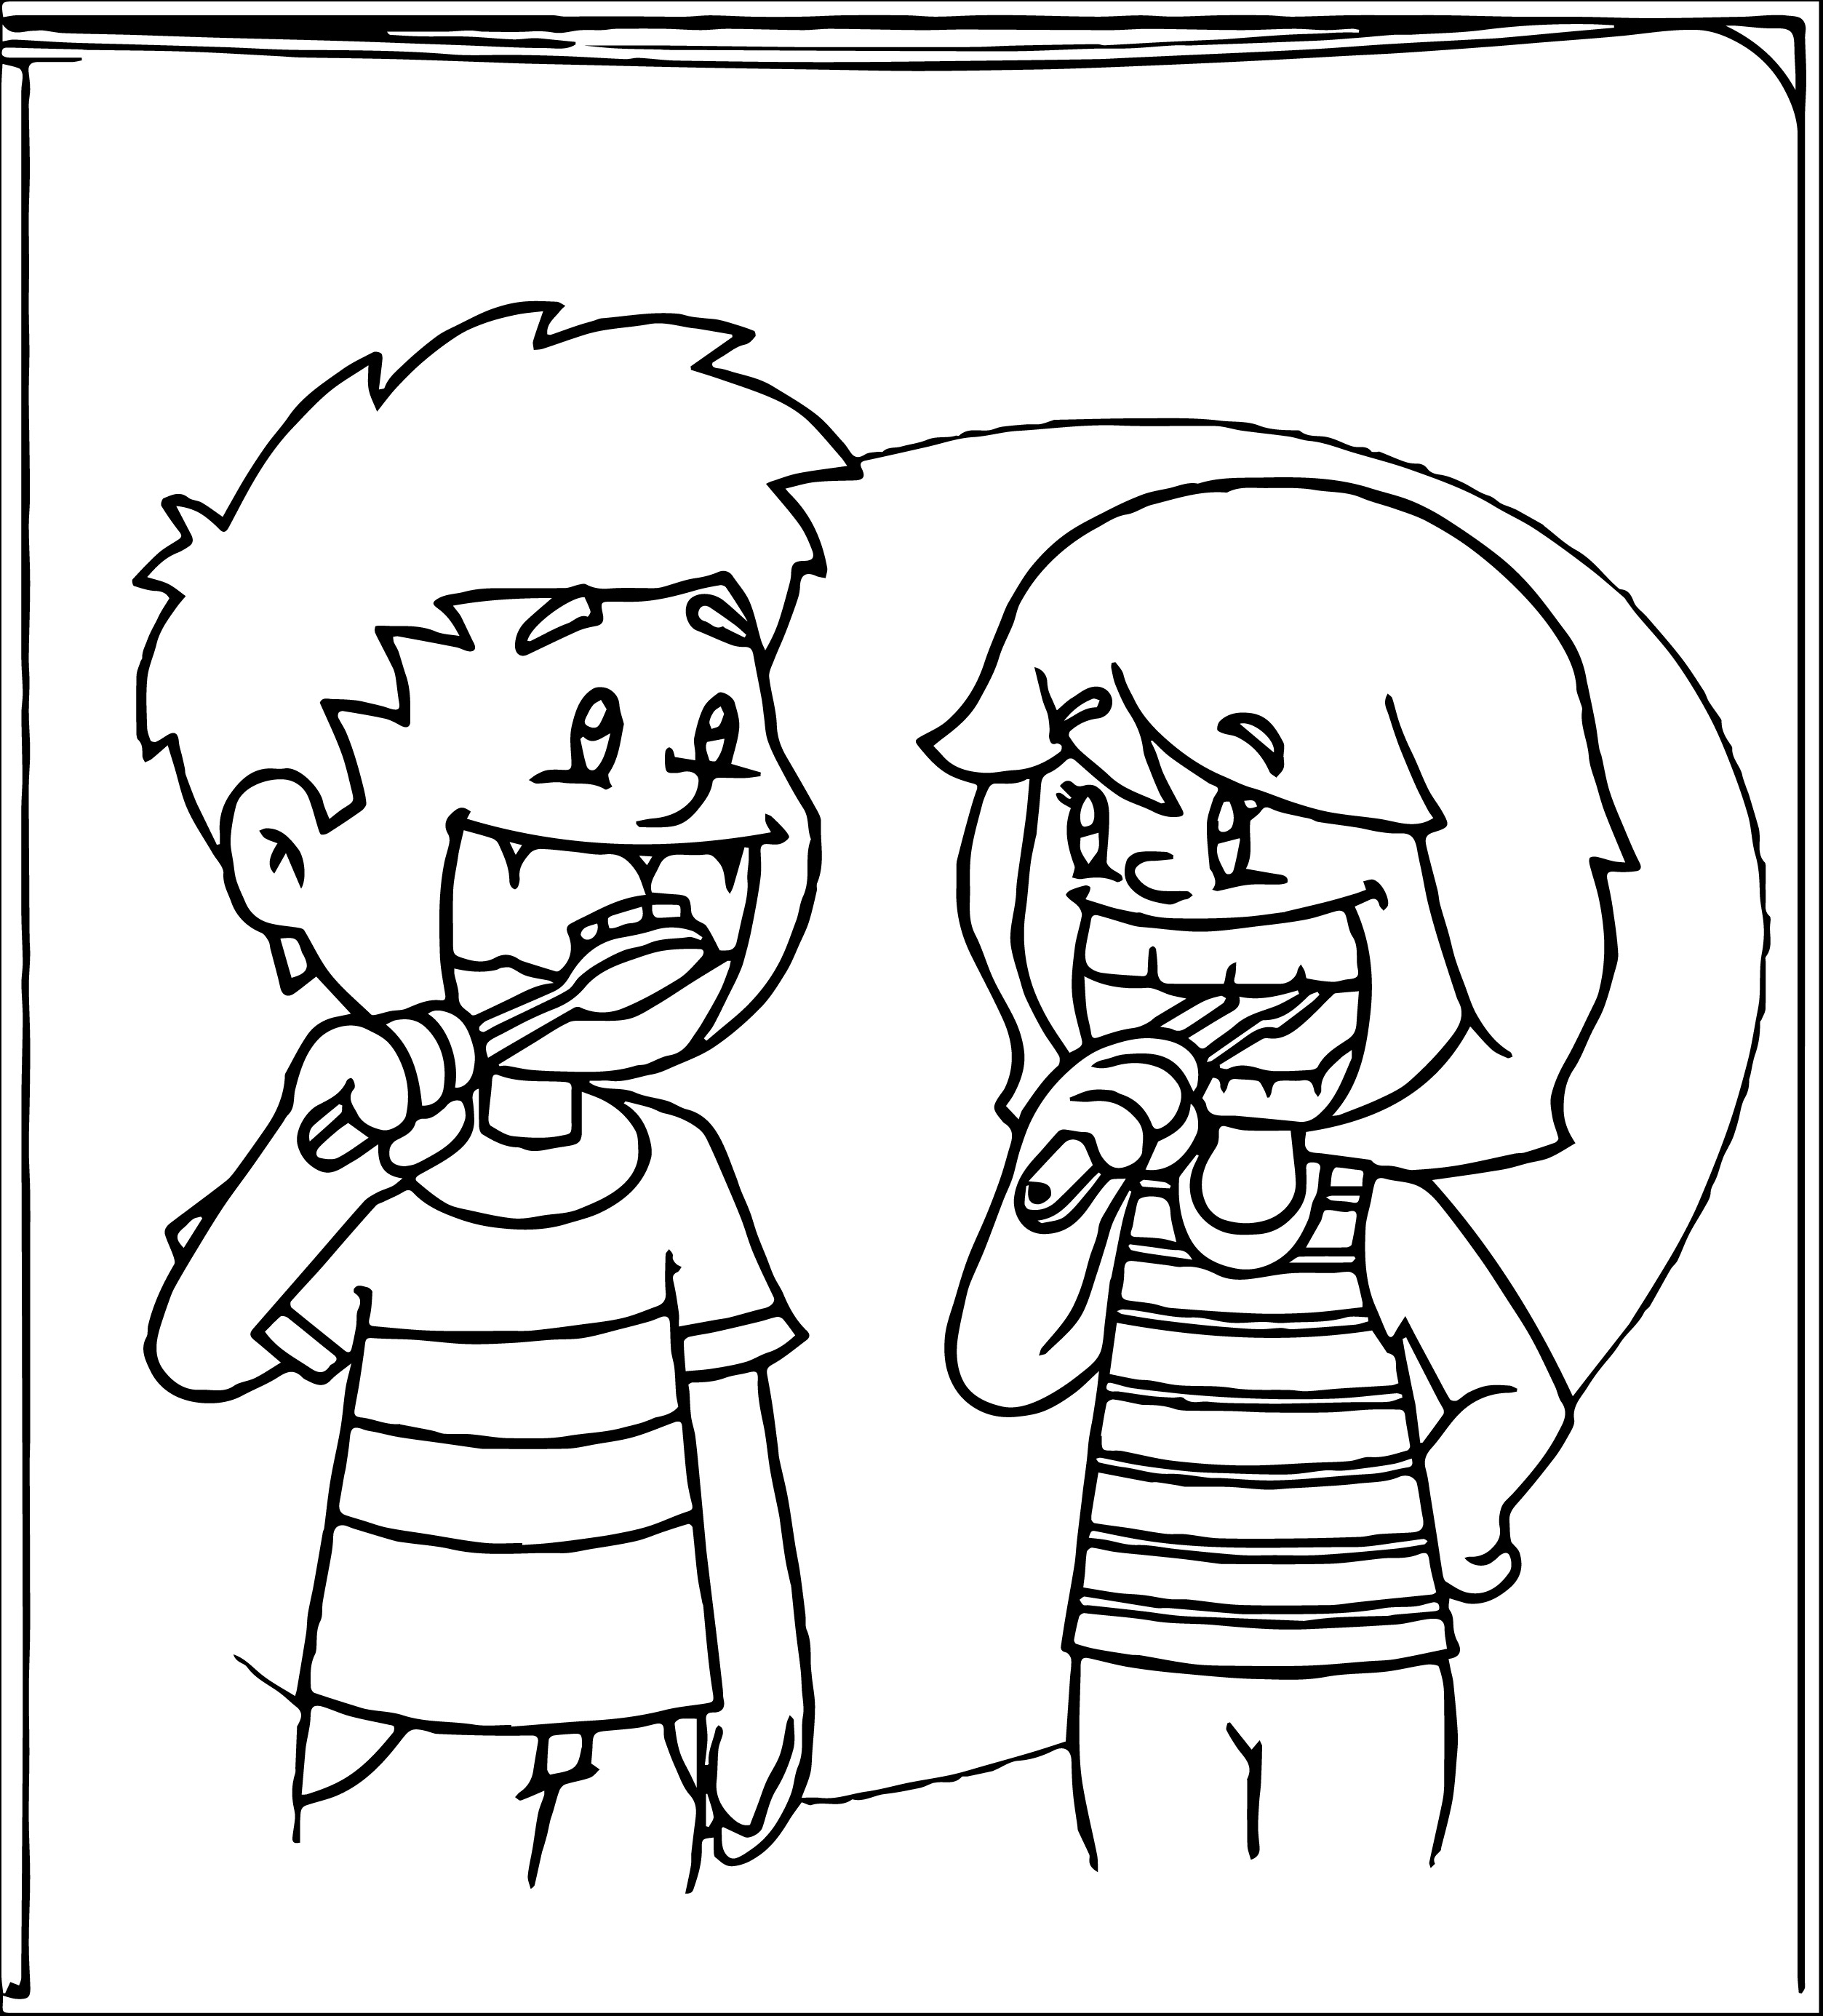 Brush Teeth Drawing At Getdrawings